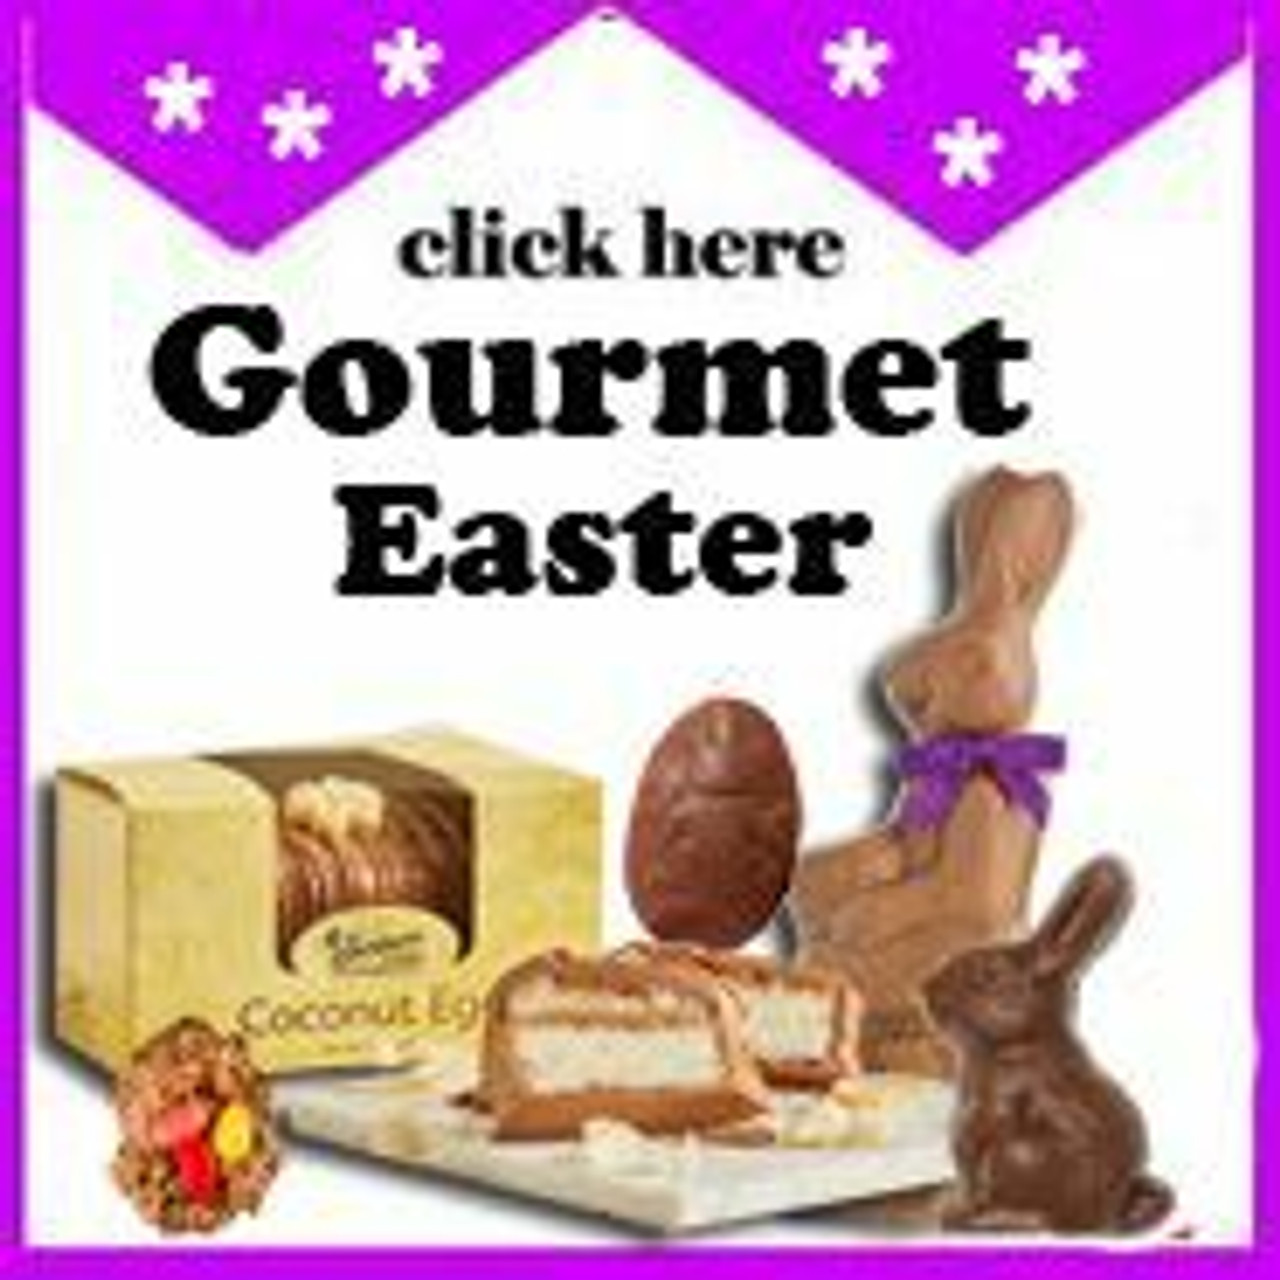 Gourmet Easter Candy